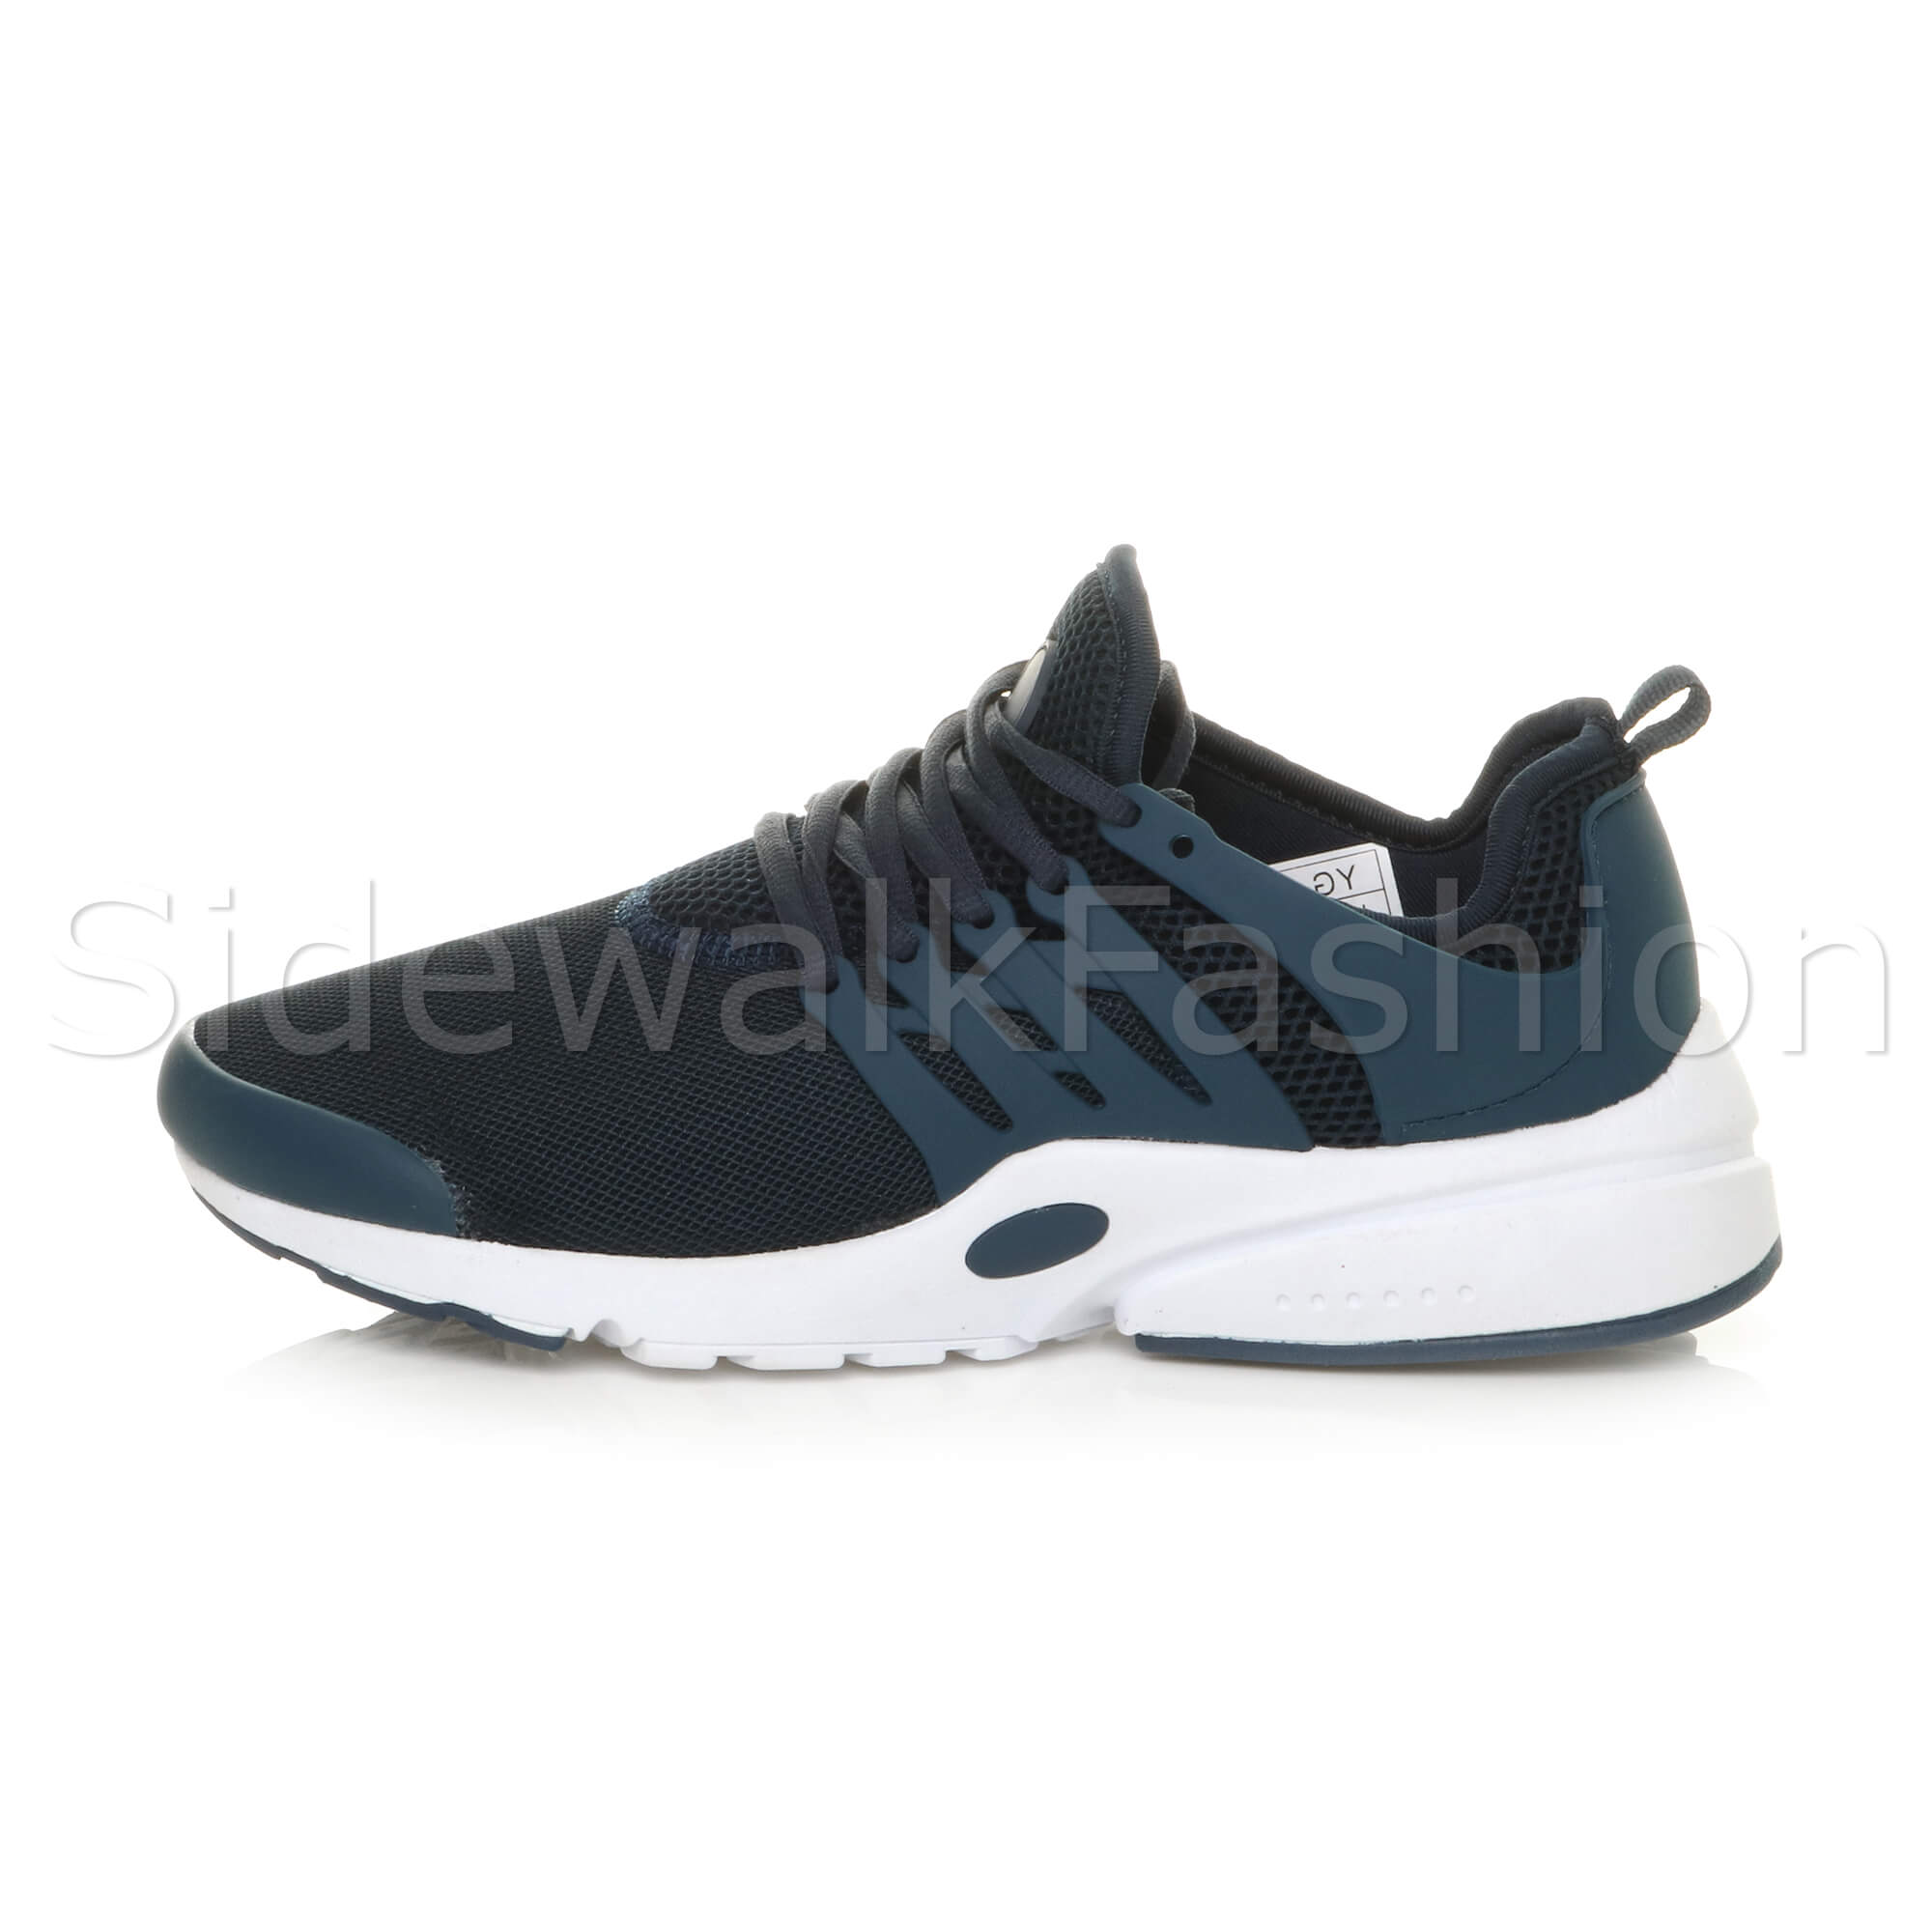 Mens-lace-up-sports-casual-low-top-gym-running-flexible-sneakers-trainers-size miniatuur 19